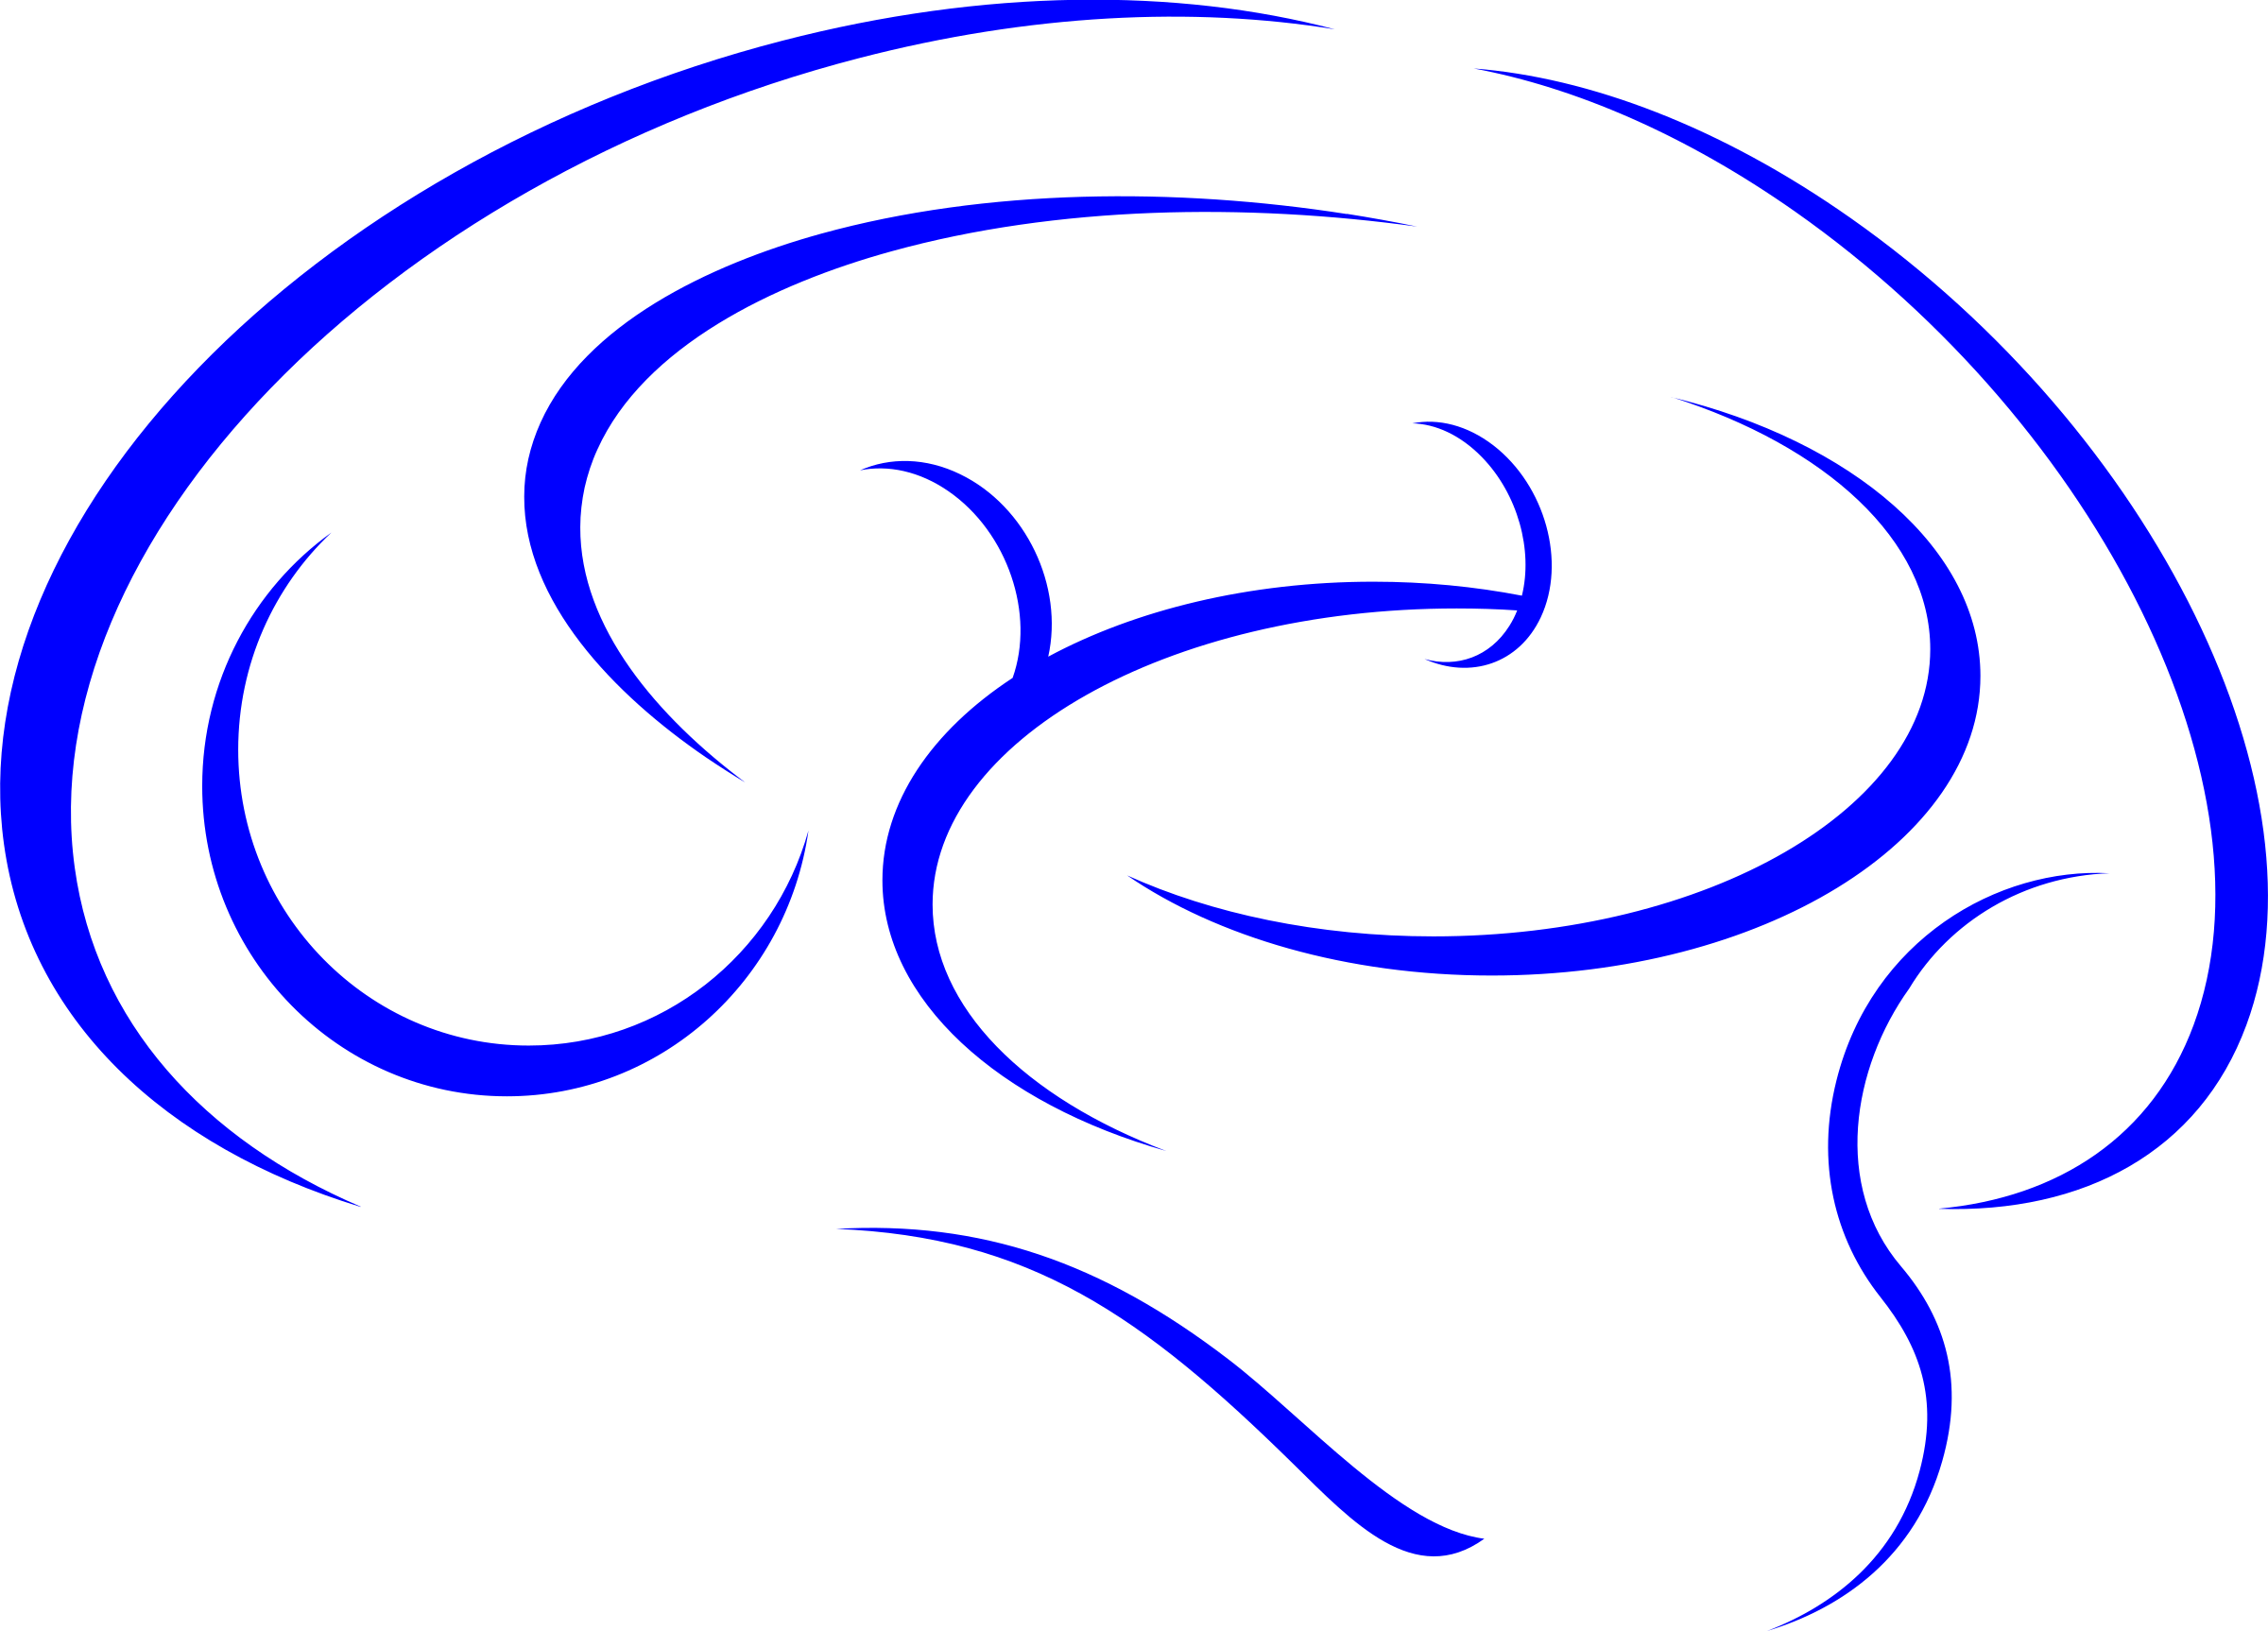 In blue icons png. Brain clipart icon